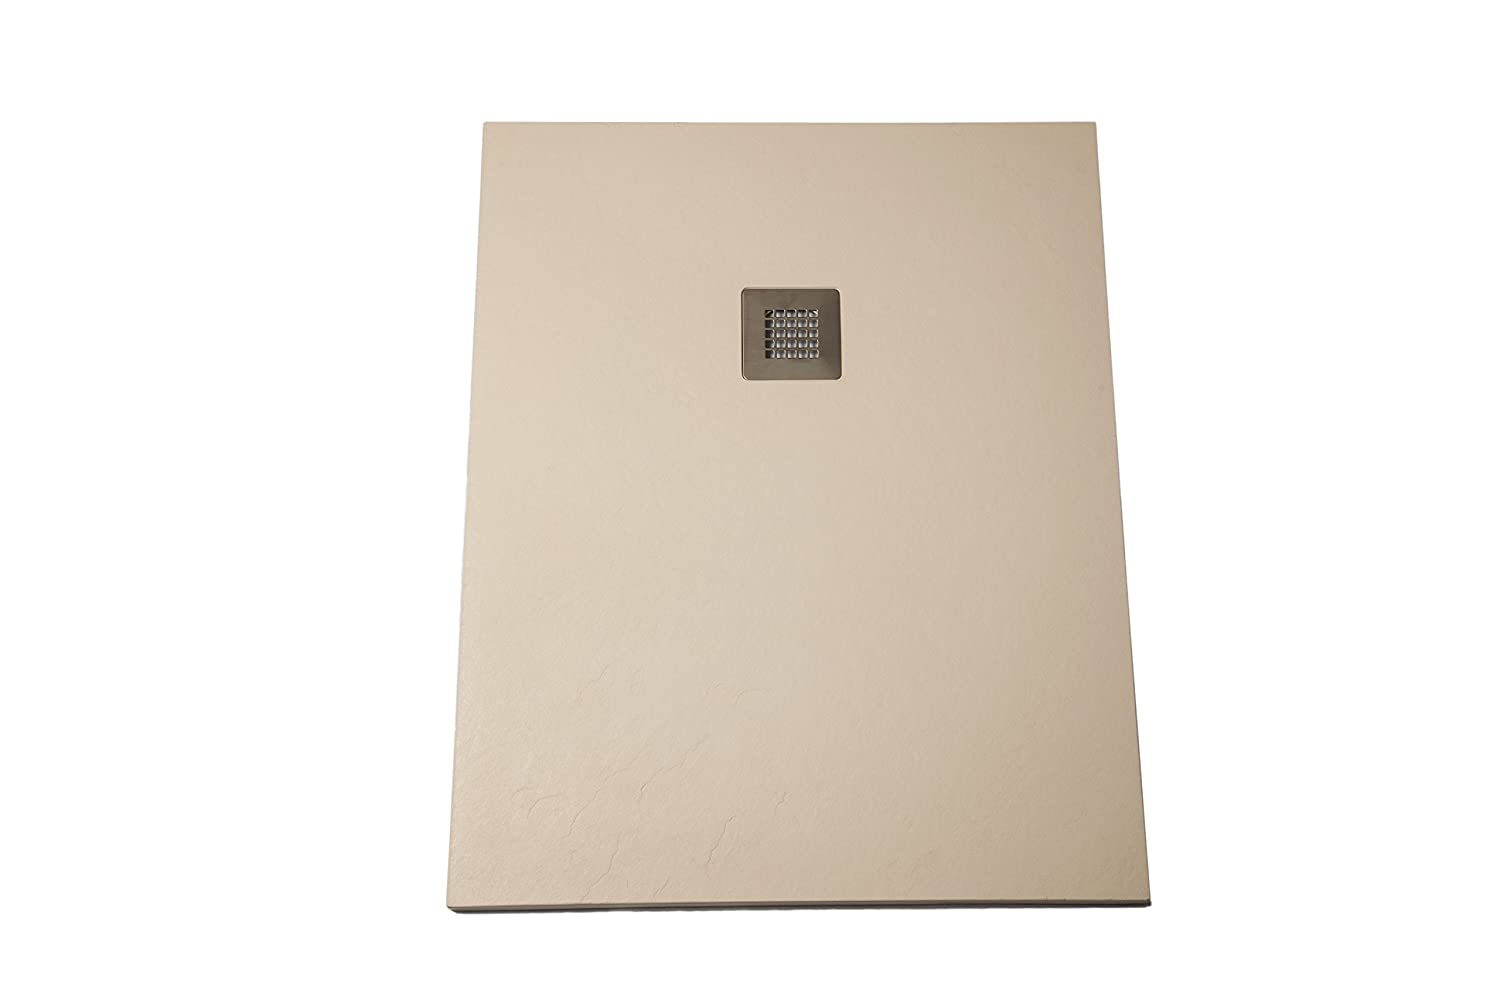 Shower Tray Super Slim Beige Silex Ral 1015 90×120 Amazon Co Uk